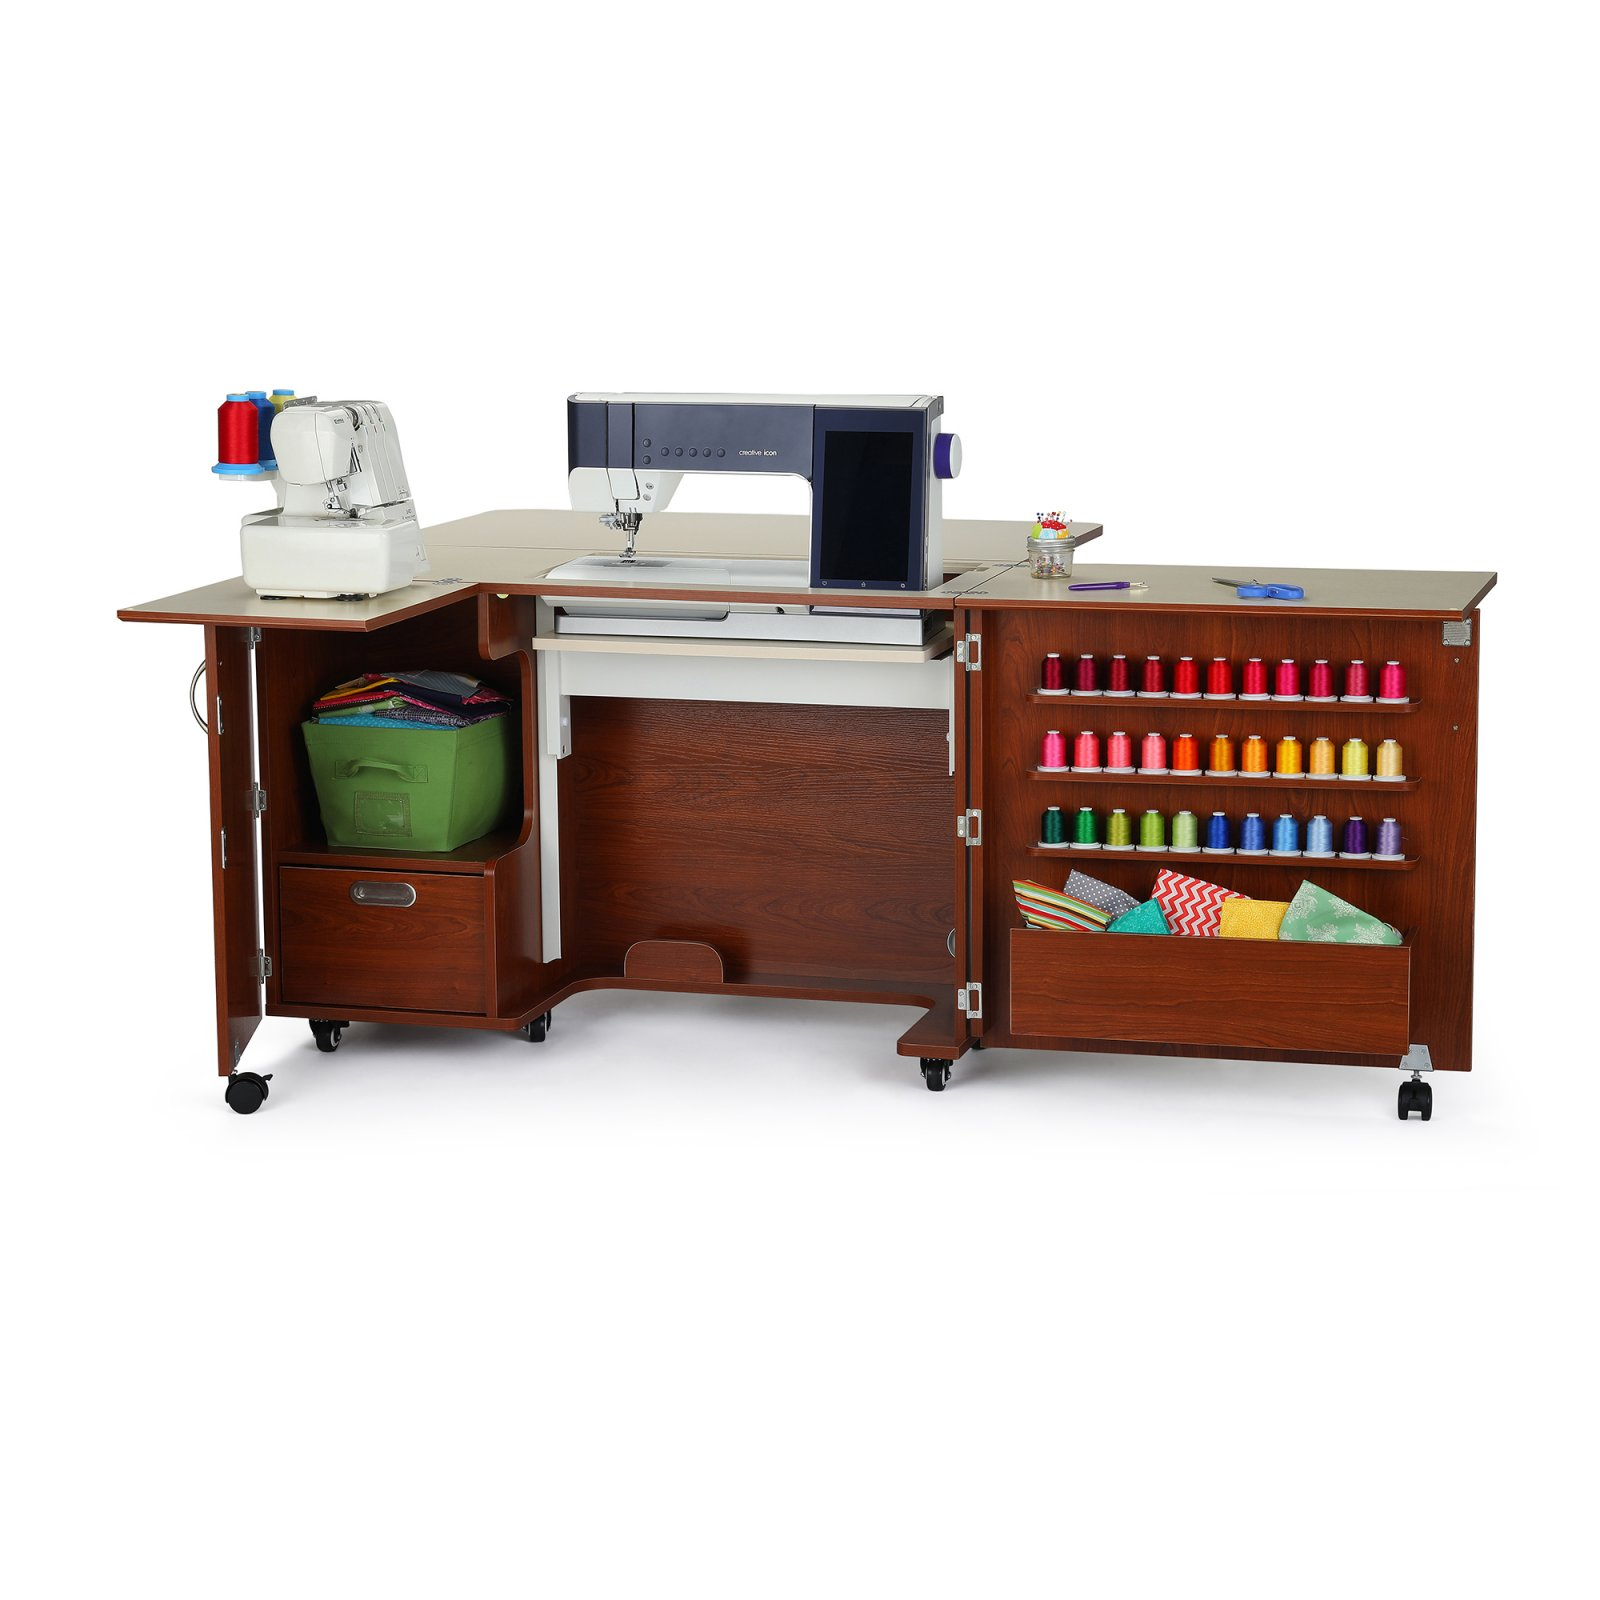 Affordable Sewing Cabinets